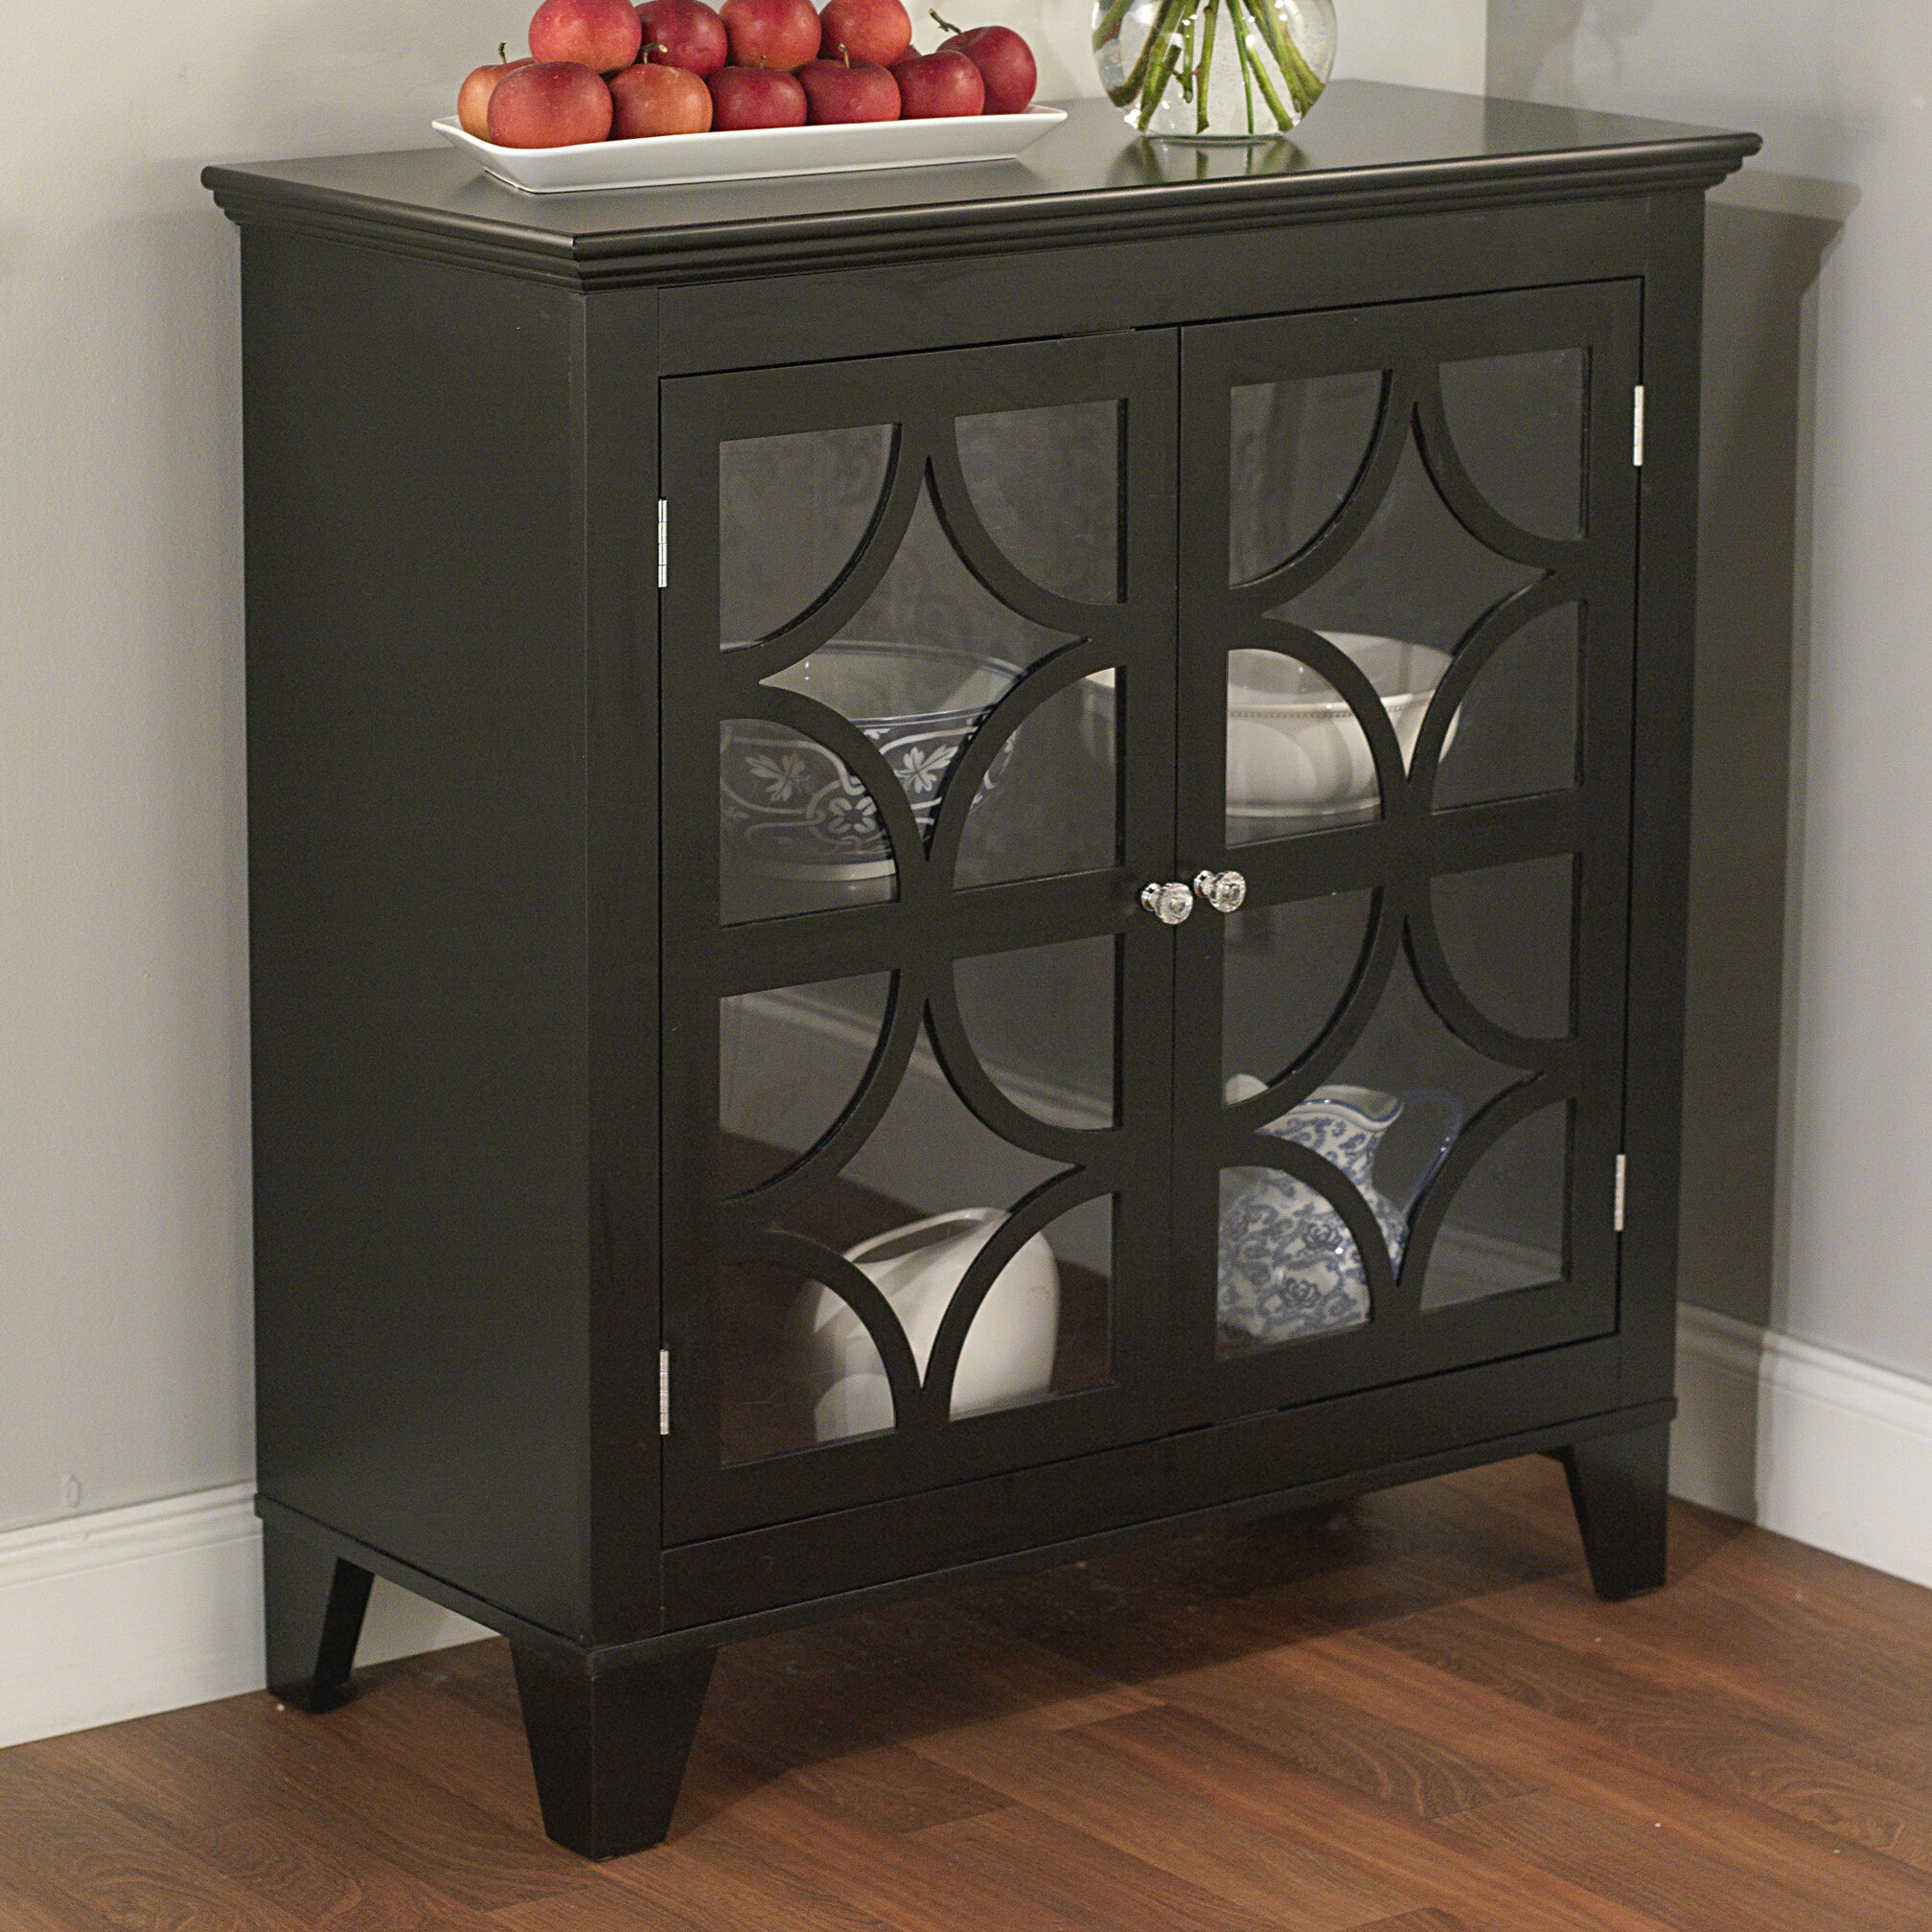 Surprising Farmhouse Rustic Accent Chests Cabinets Birch Lane Complete Home Design Collection Epsylindsey Bellcom